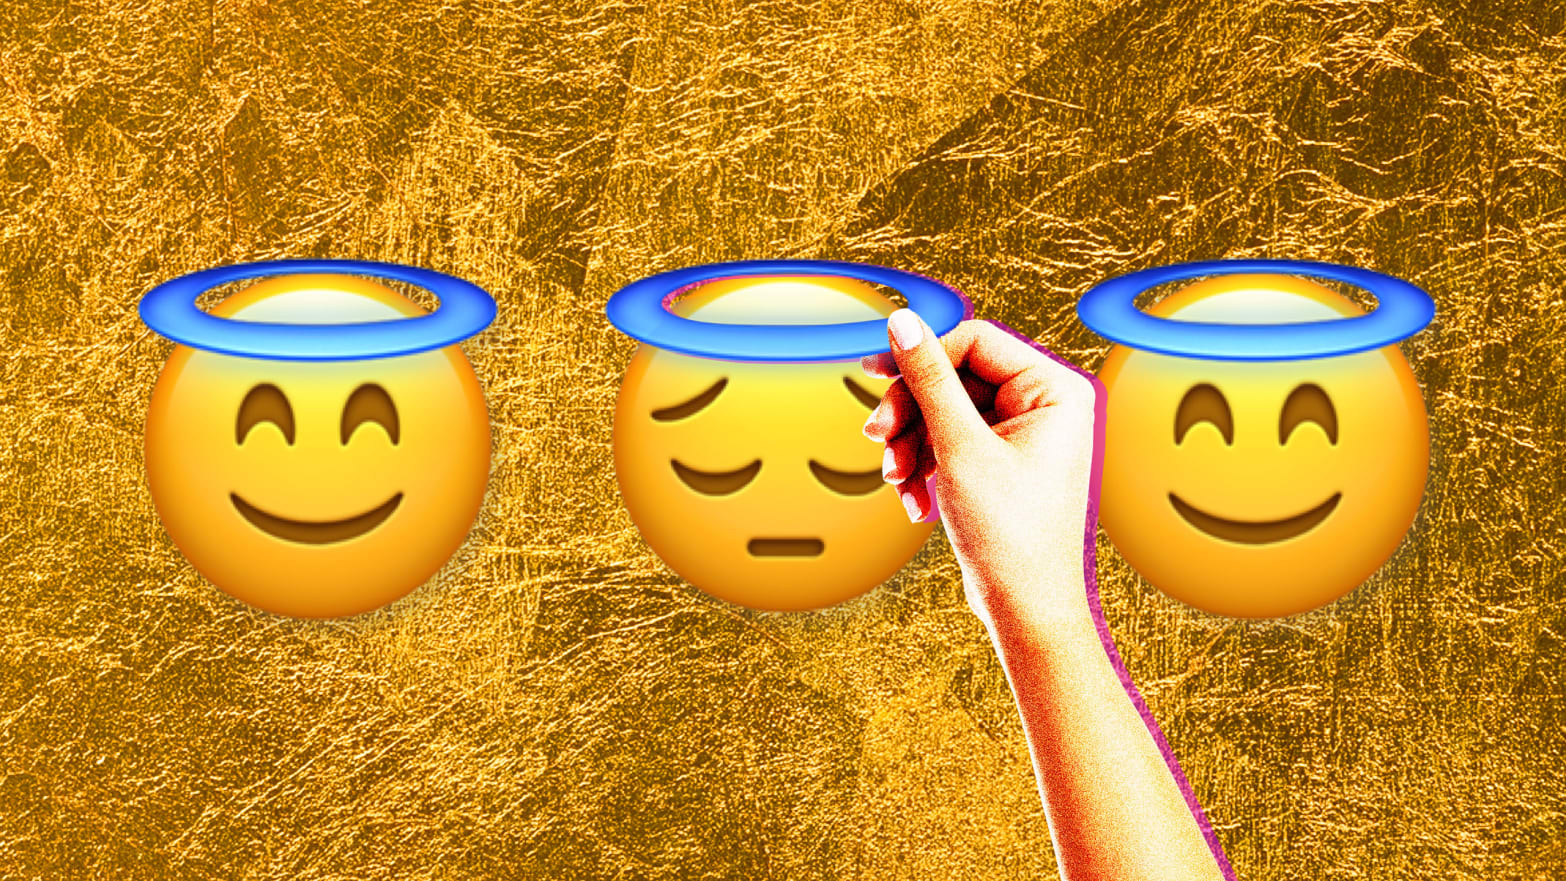 Does Faking Religion Lead to Depression?